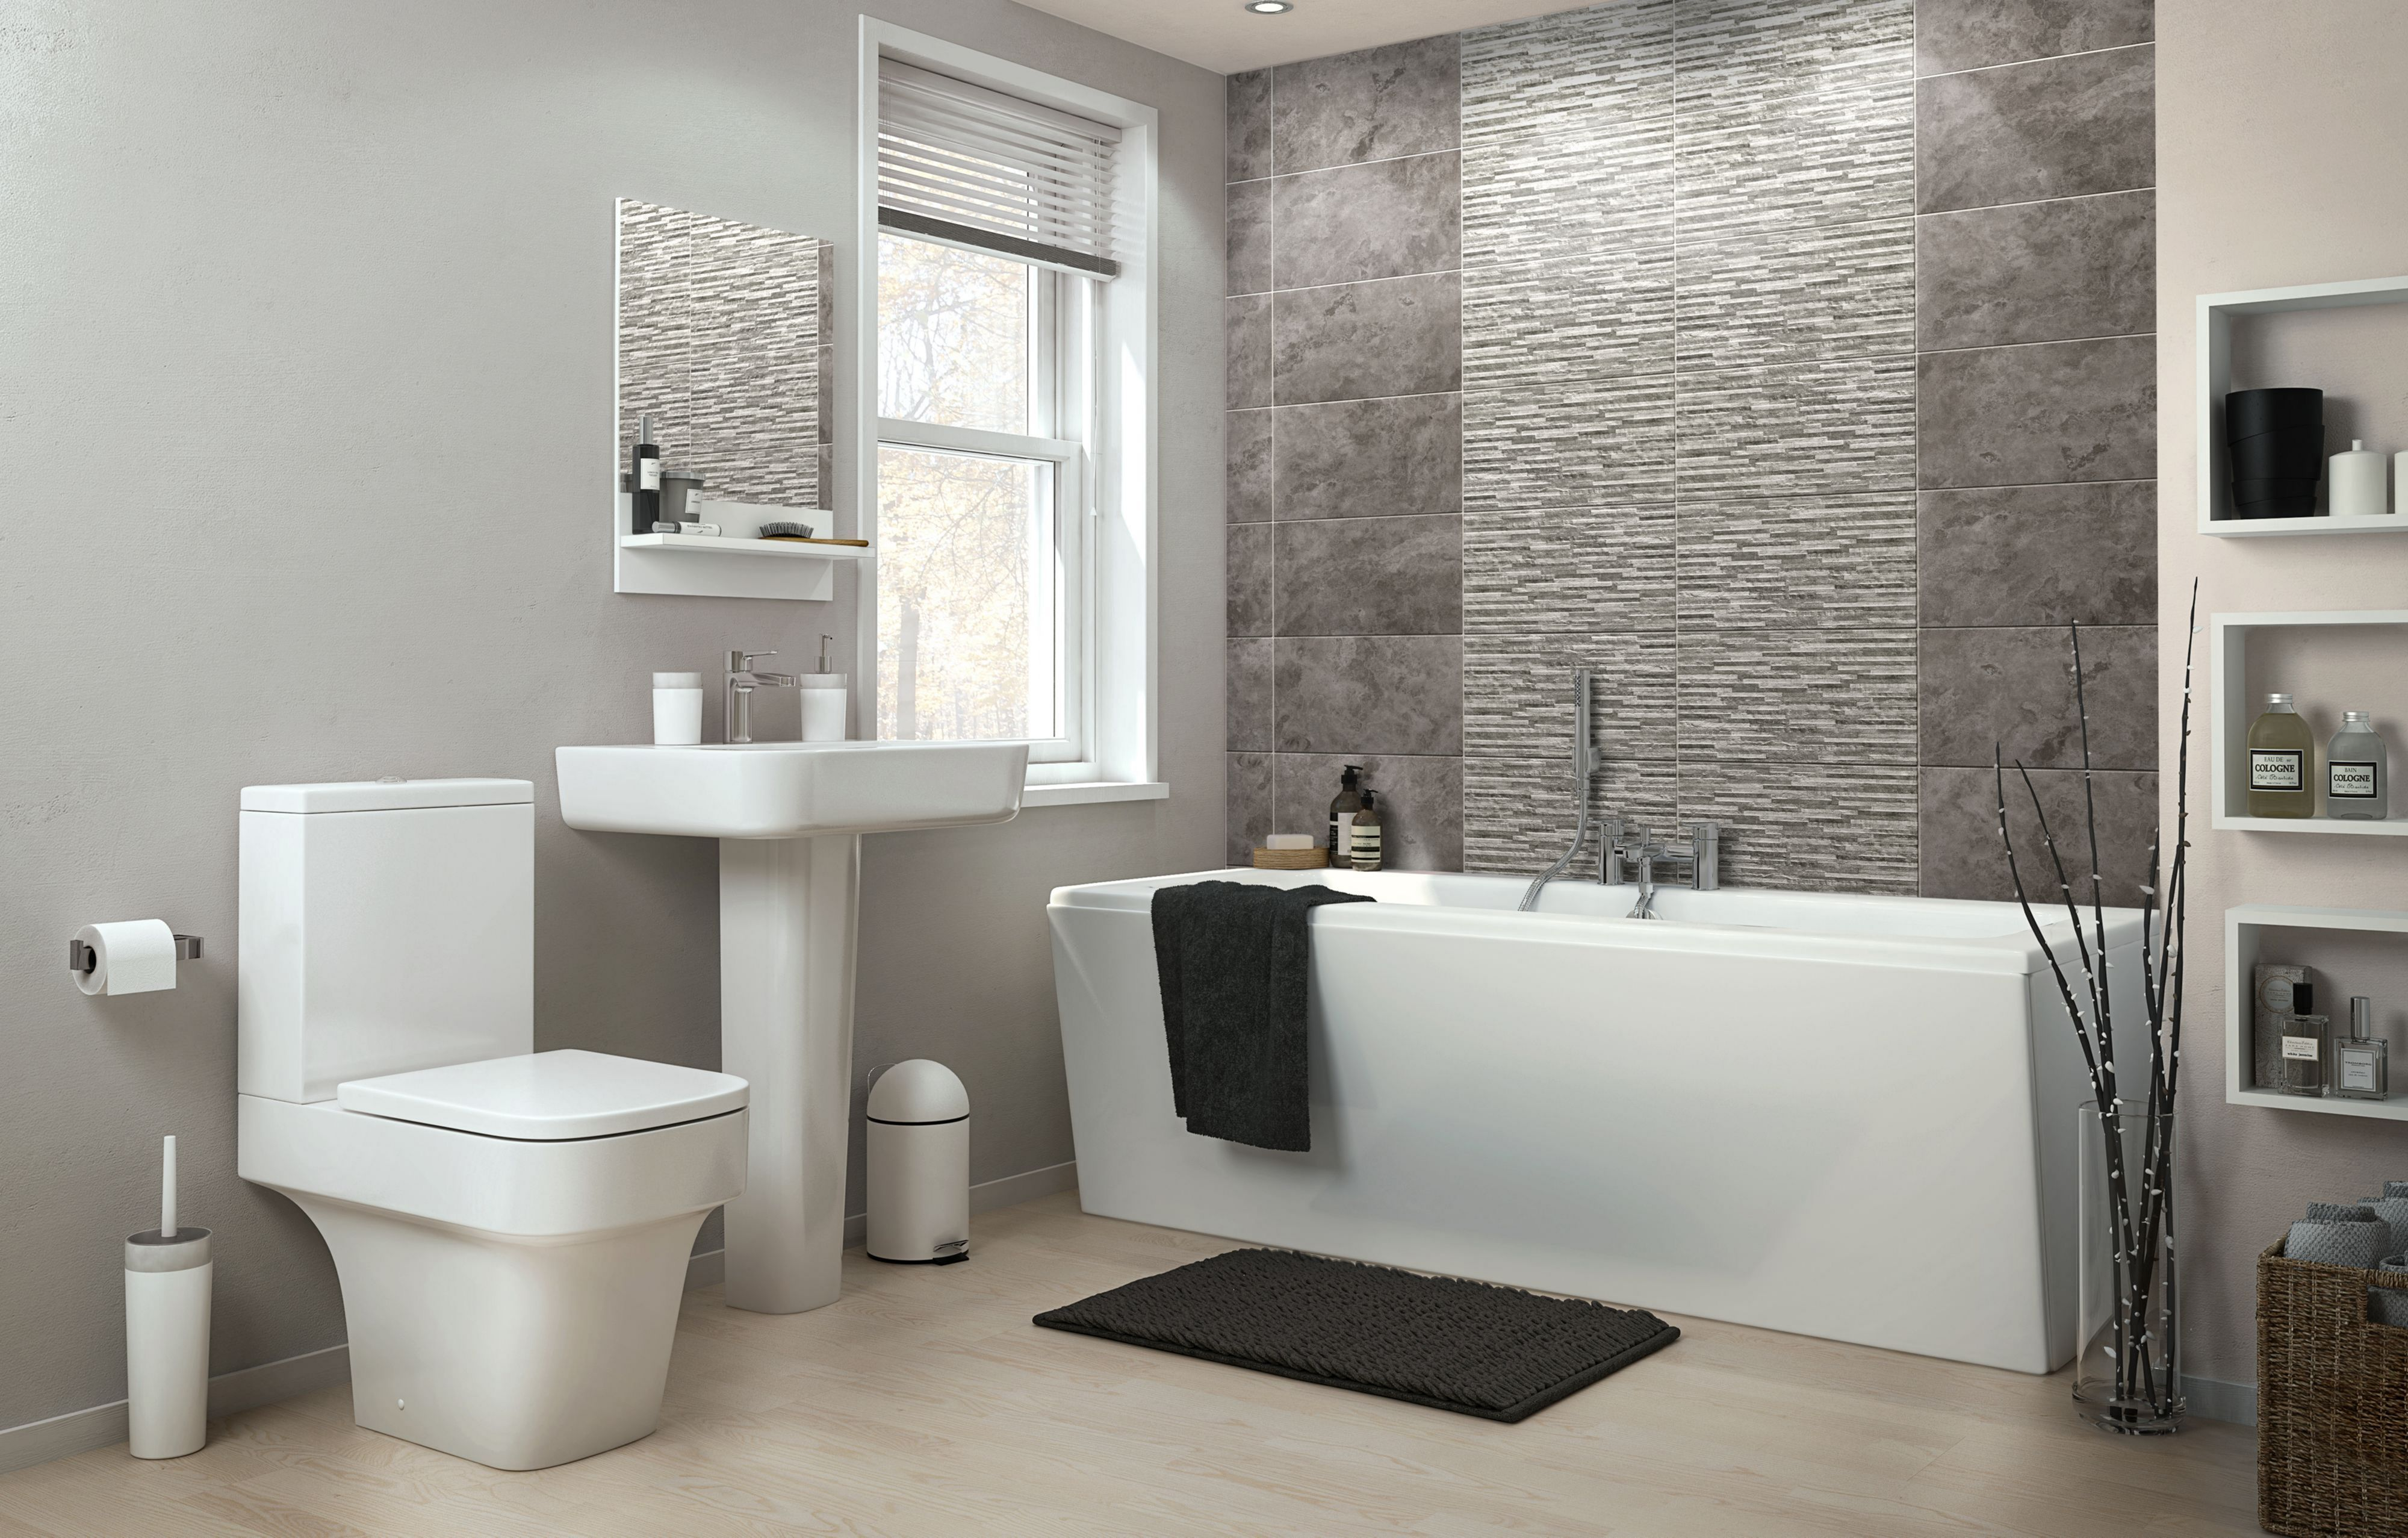 25 Attractive Modern Small Bathroom Designs For Awesome Home Dexorate Modern Bathroom Bathroom Design Small Modern Simple Bathroom